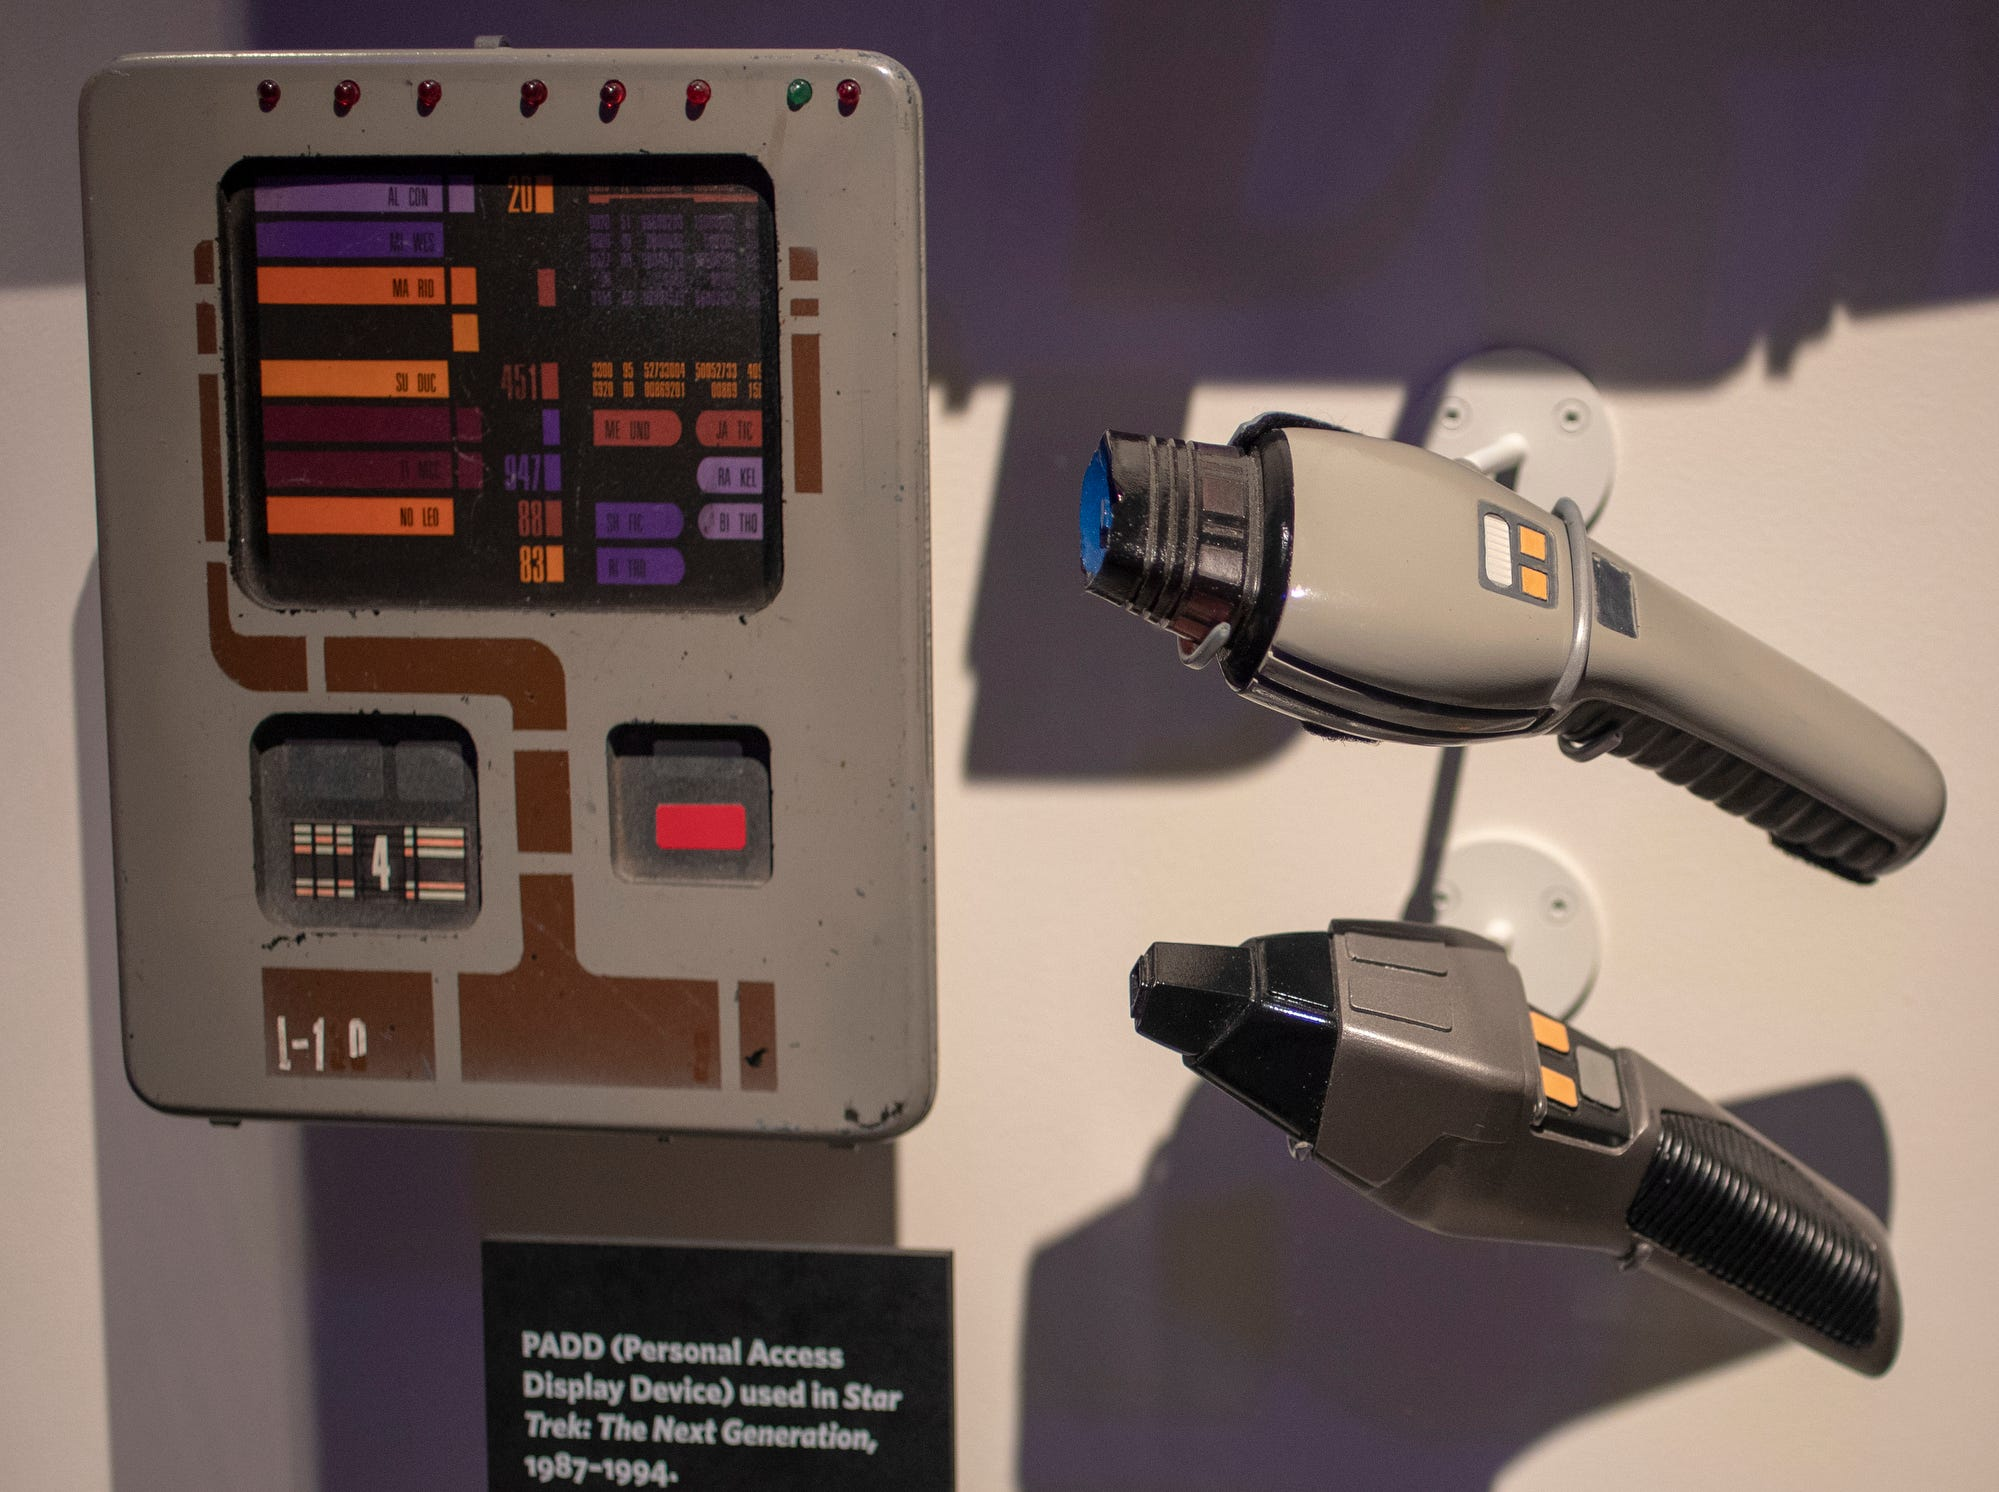 """An iPad-like computer called a personal access display device (left) and two phaser models, all from """"Star Trek: The Next Generation,"""" are seen at The Children's Museum of Indianapolis, Wednesday, Jan. 23, 2019. The """"Star Trek: Exploring New Worlds"""" exhibit is made up of set pieces, ship models and outfits used during various Star Trek shows and movies and is on display at the museum from Feb. 2 through April 7, 2019."""